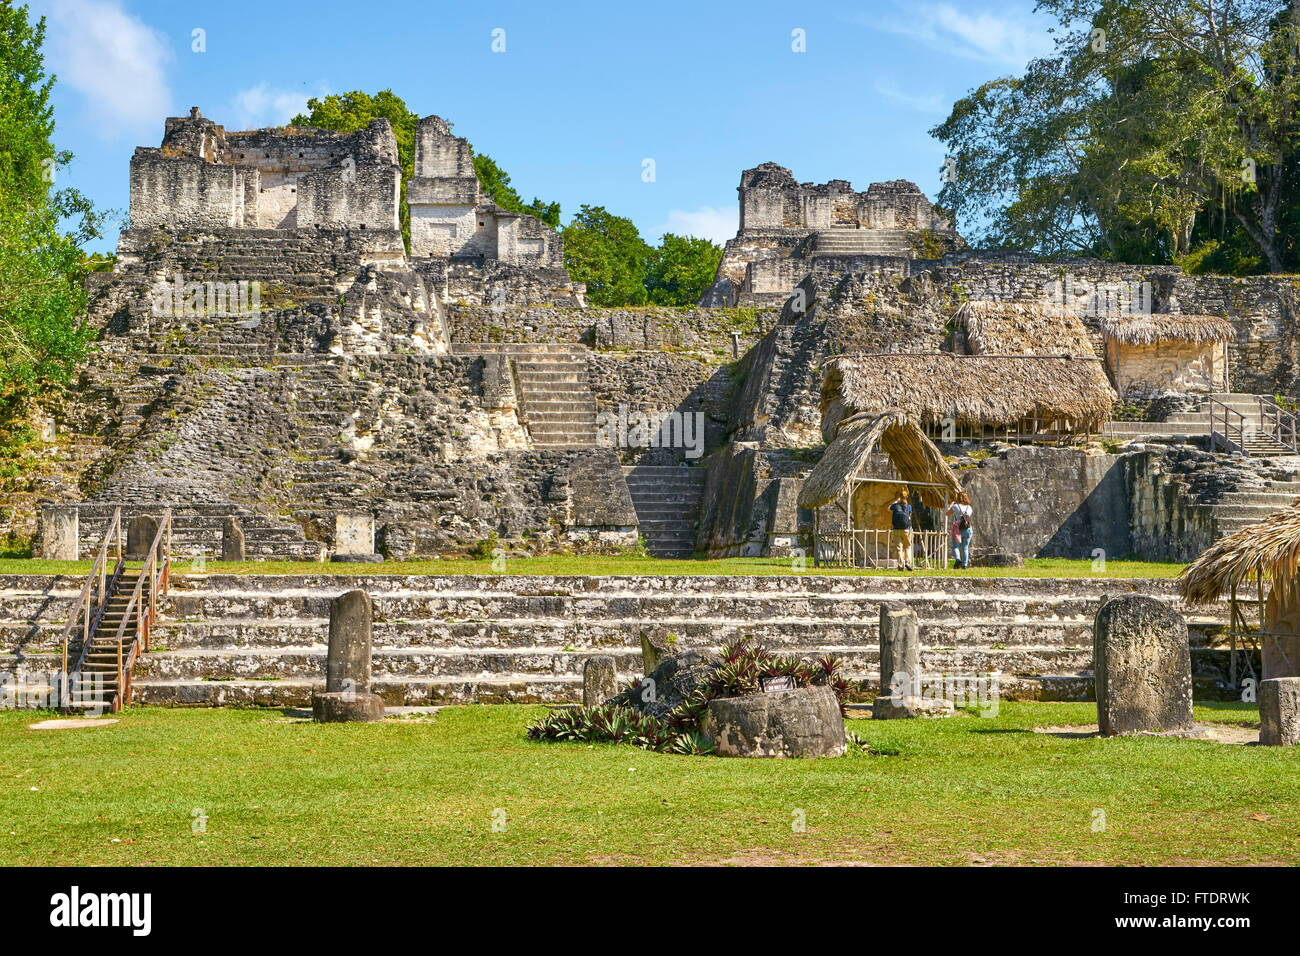 Ancient Maya Ruins, Tikal National Park, Guatemala, Yucatan, UNESCO - Stock Image